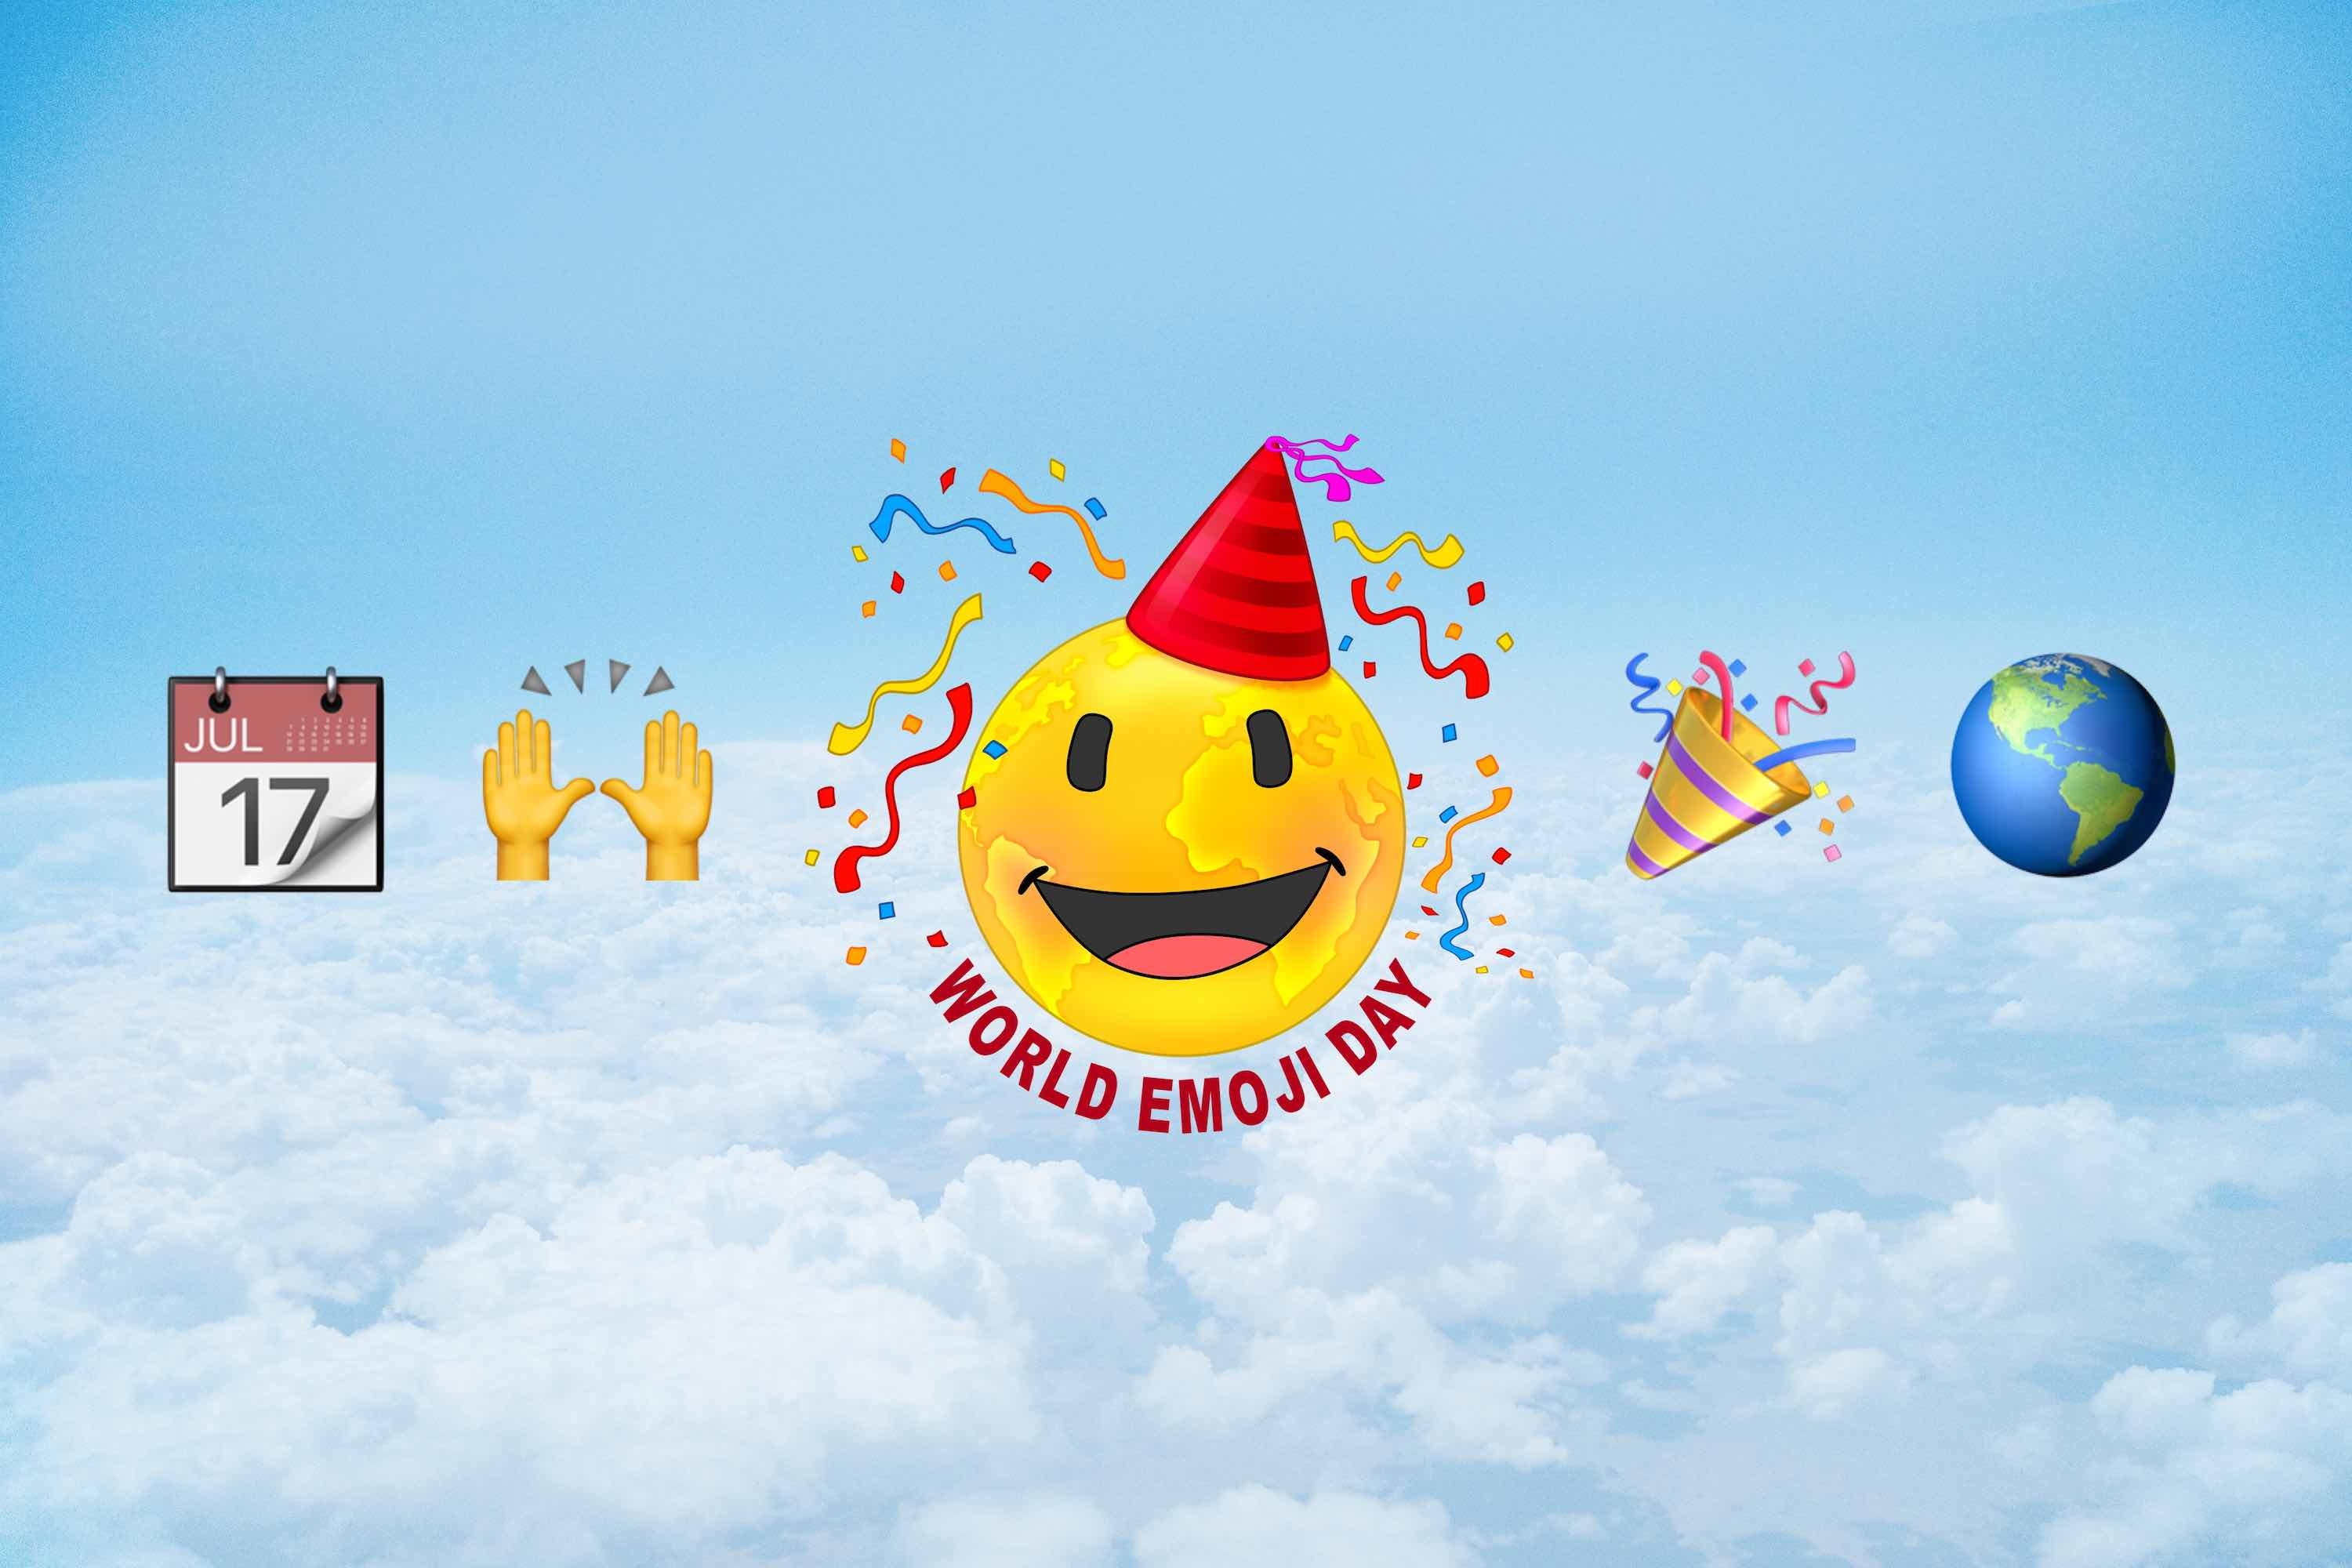 World Emoji Day 2017